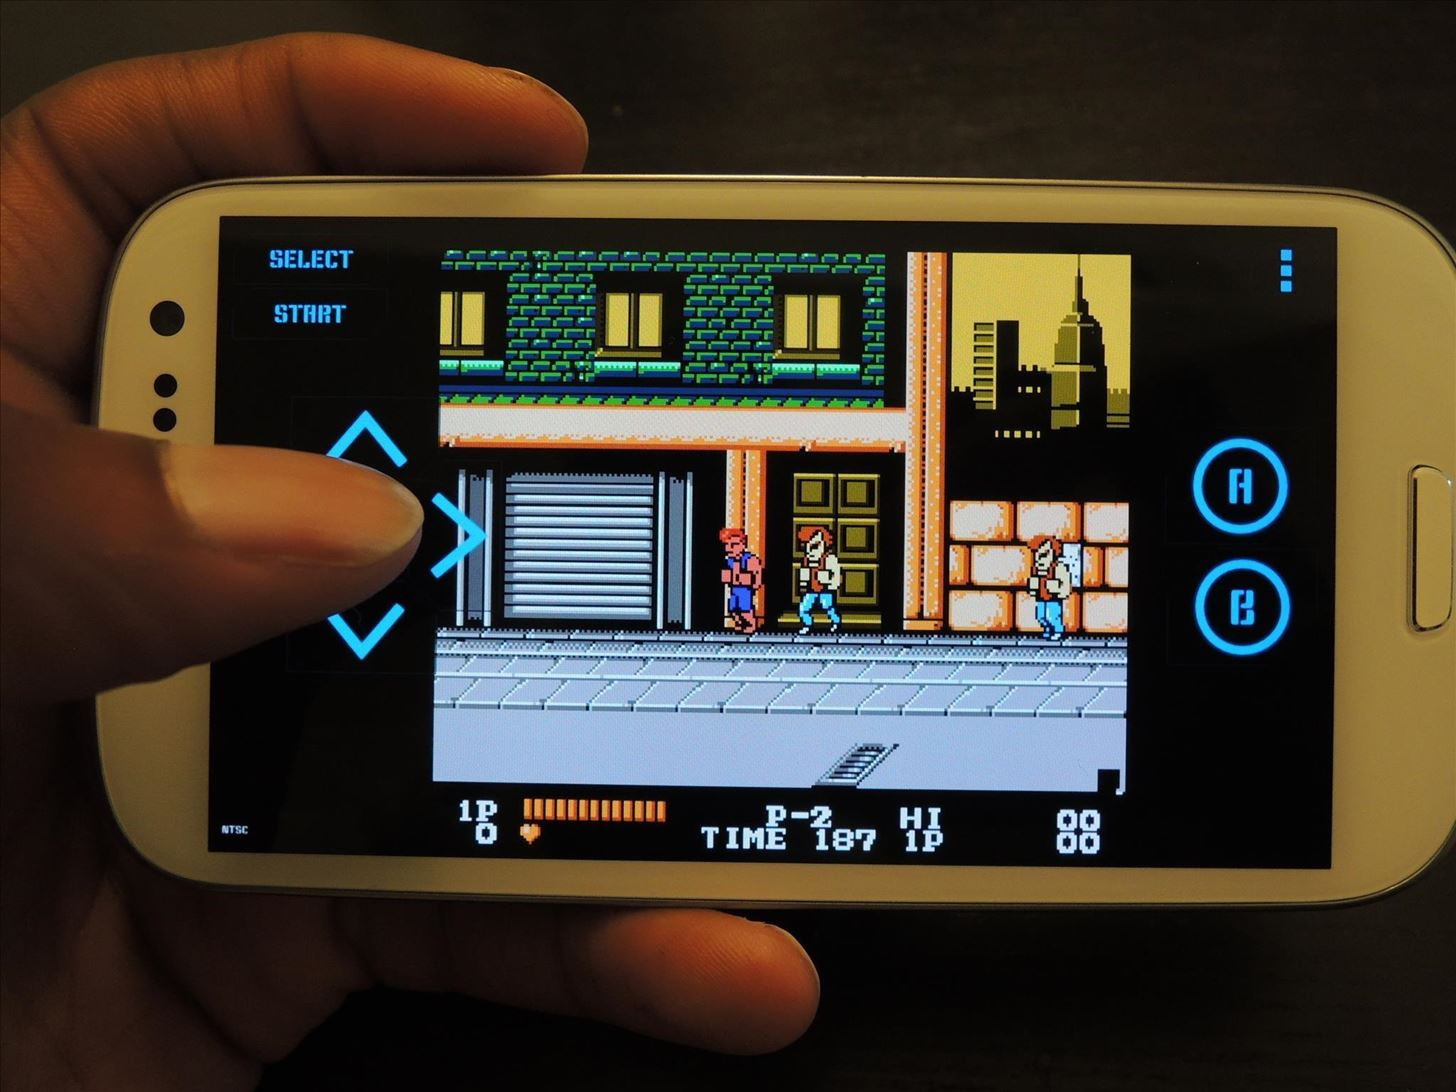 How to Play Classic Nintendo (NES) Games on Your Samsung Galaxy S3